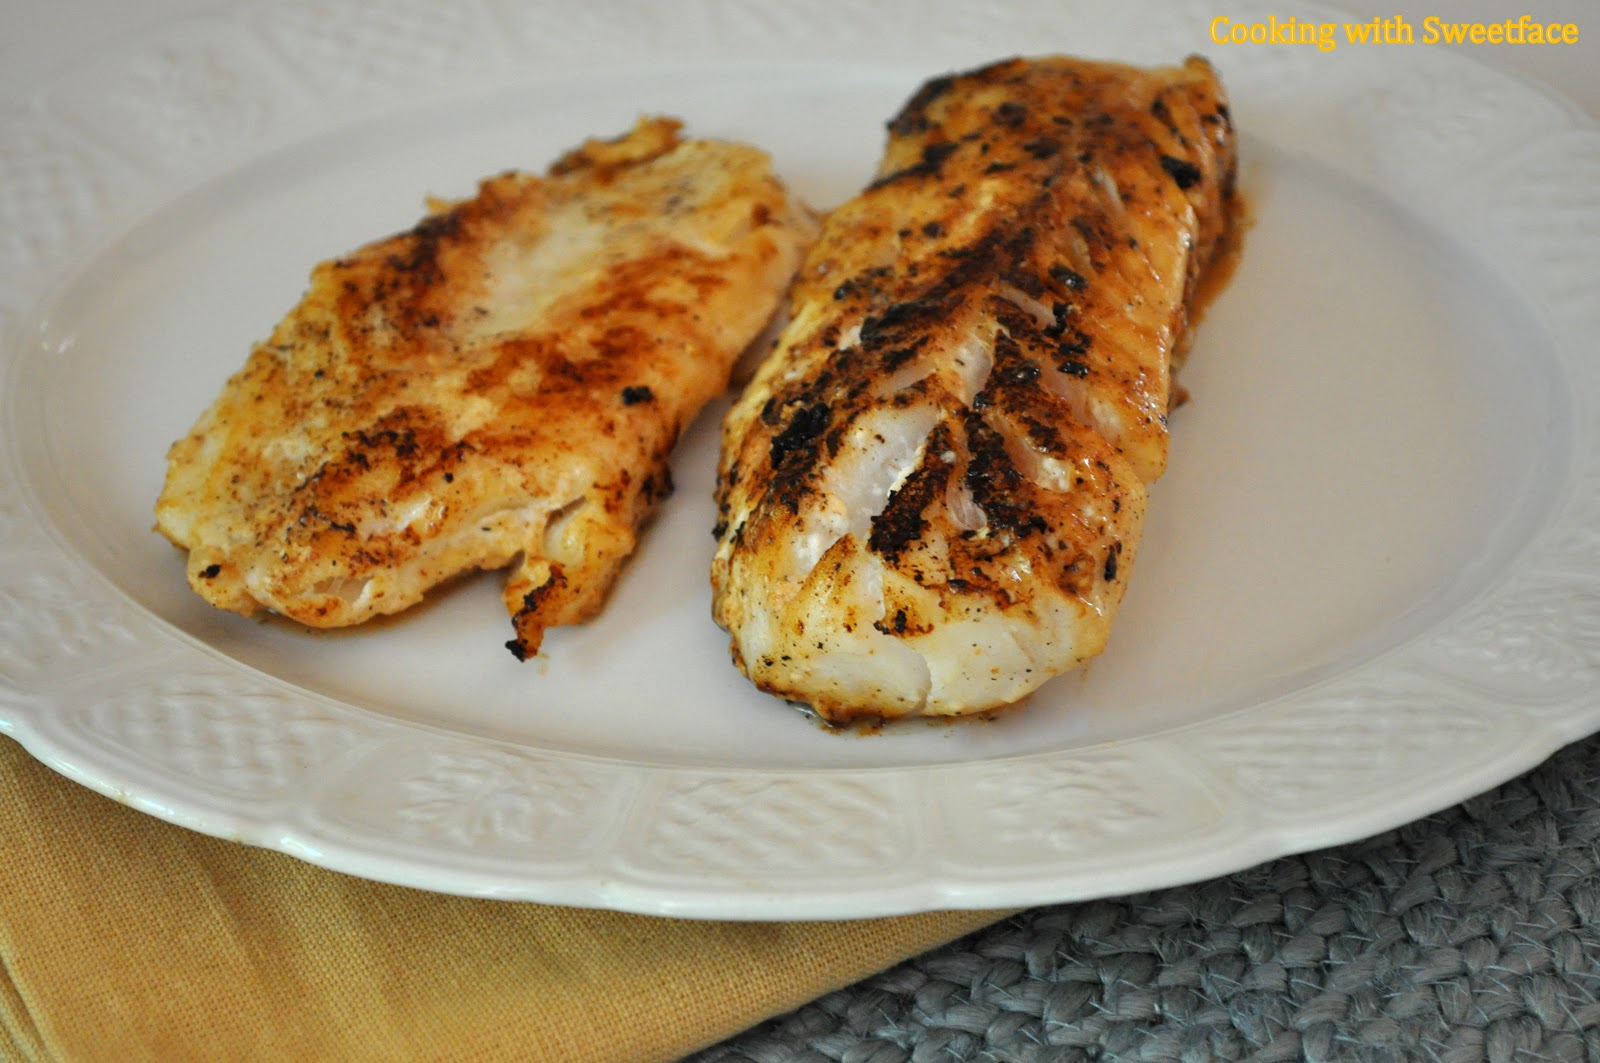 Cookingwithsweetface lemon garlic cod fillets for Cod fish fillet